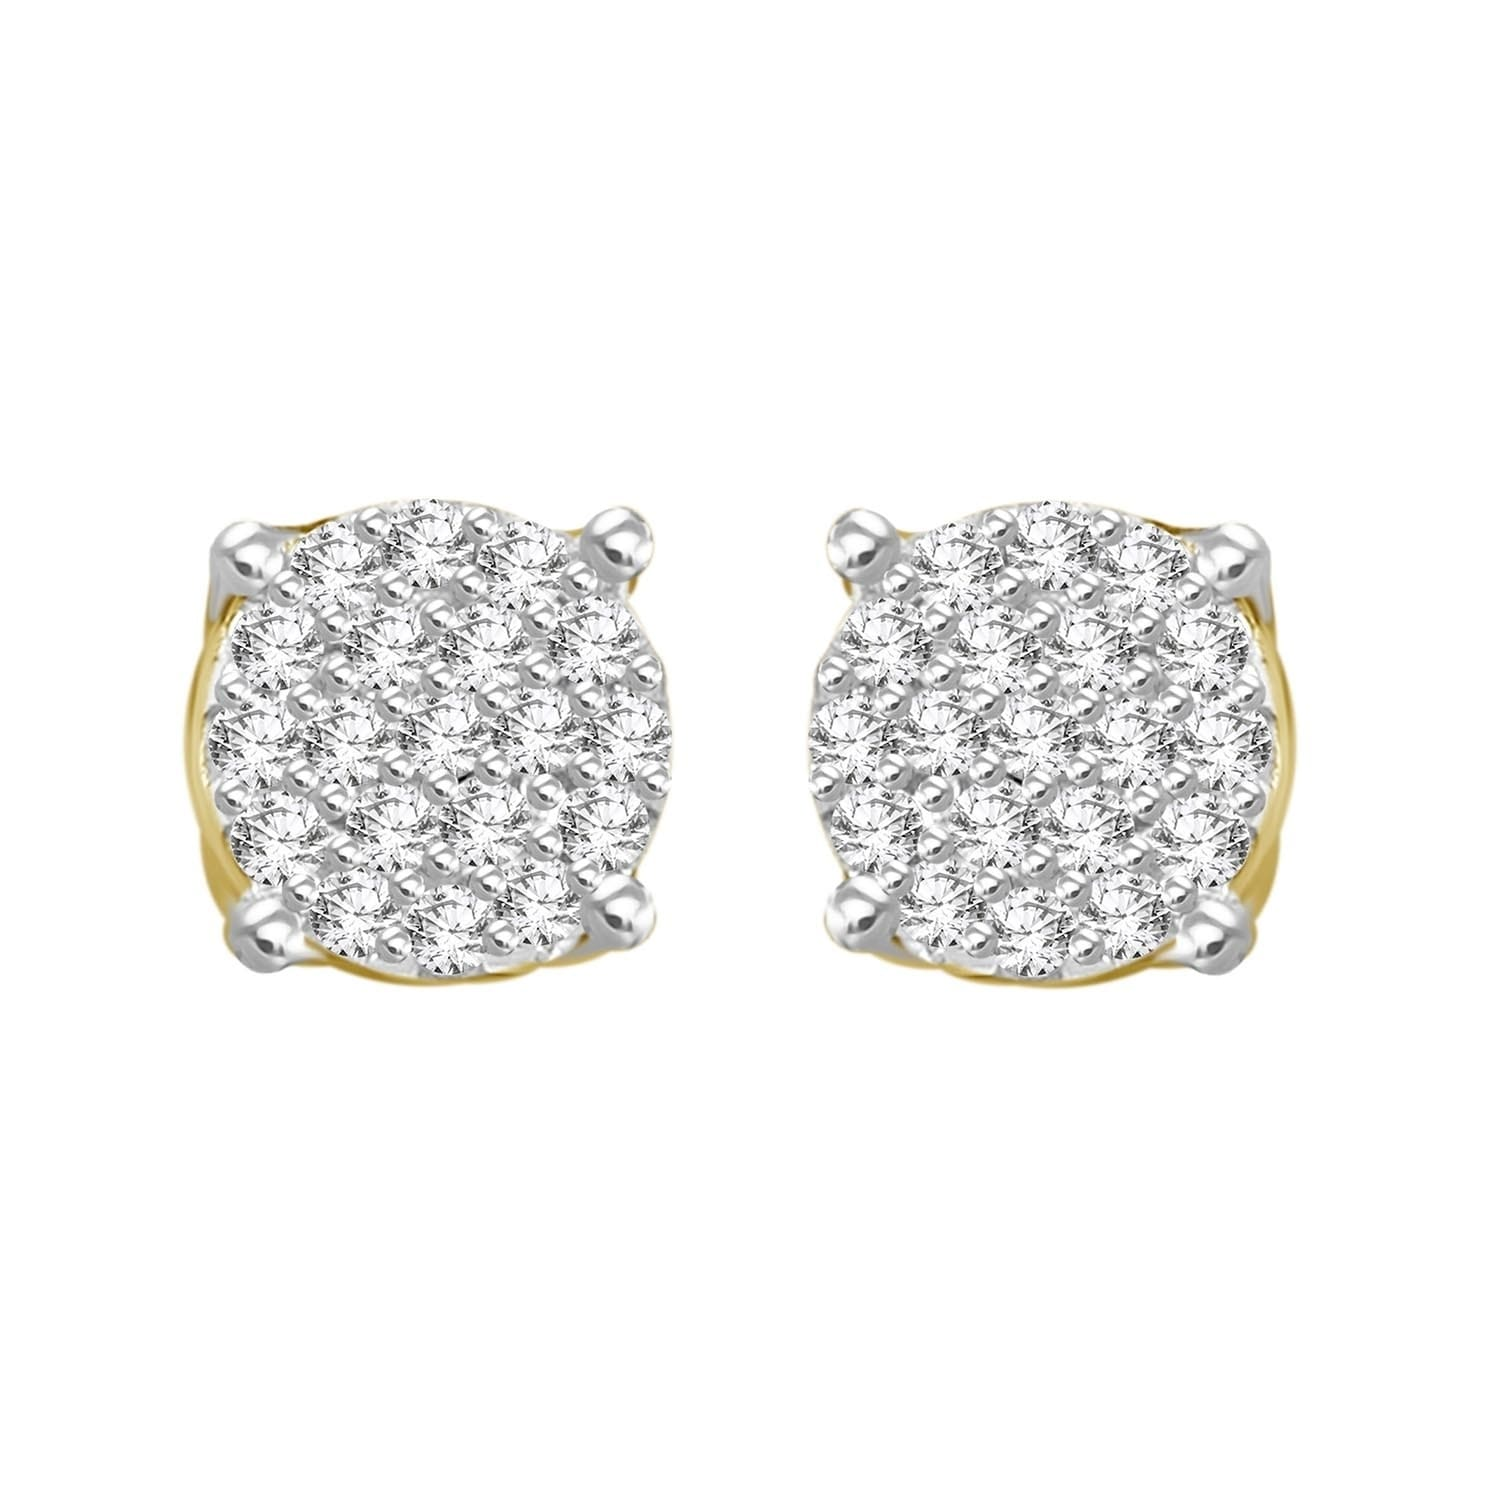 21bbd0e5a 1/6 cttw Round Natural Diamond Round Shape Stud Ladies Earrings ...